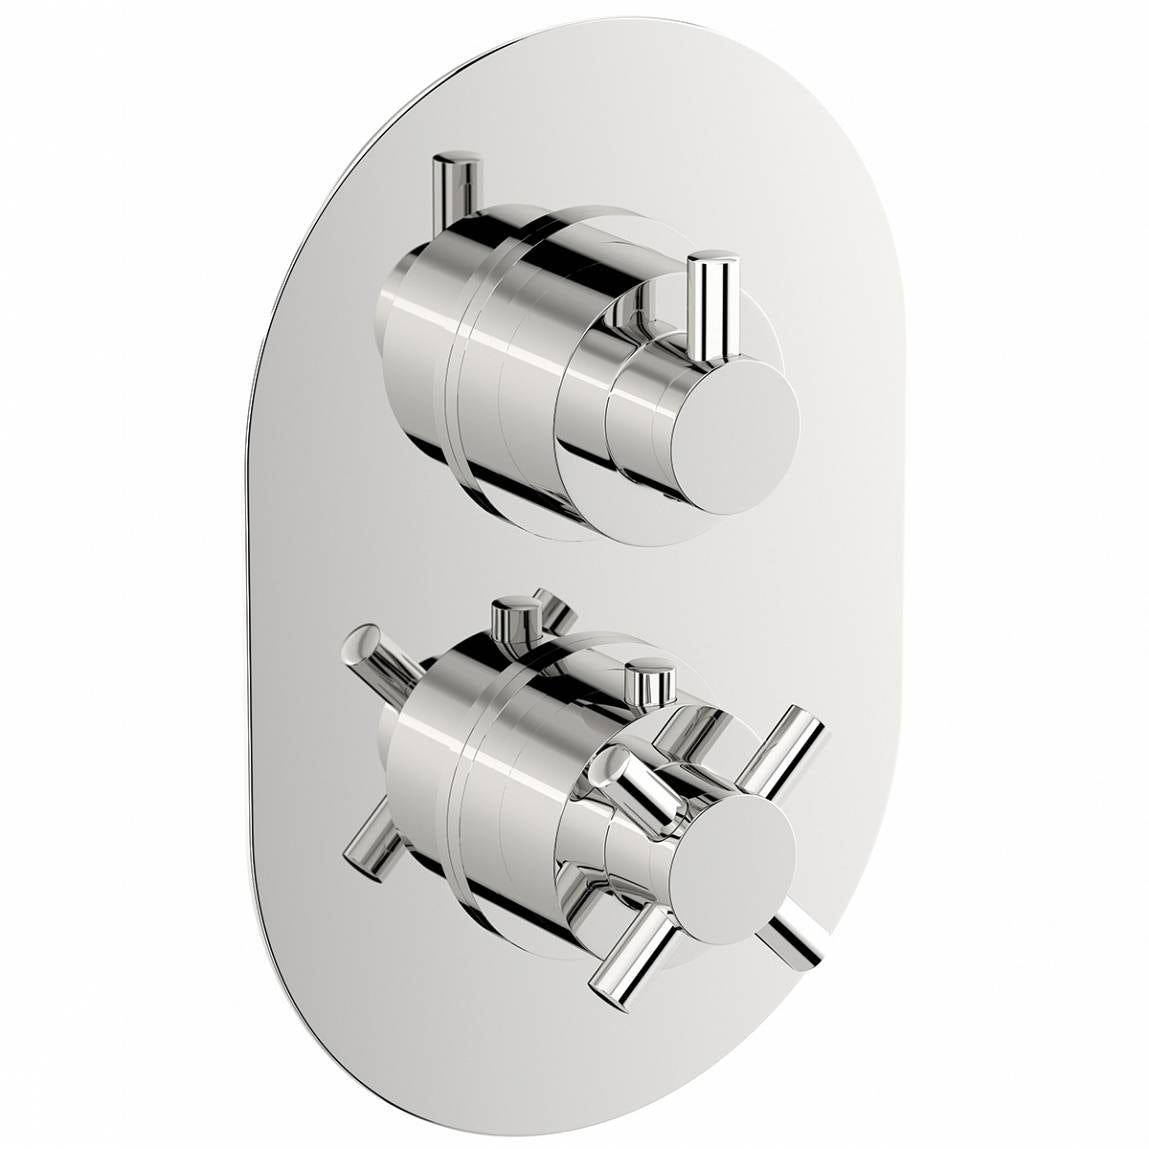 Mode Tate oval twin thermostatic shower valve with diverter